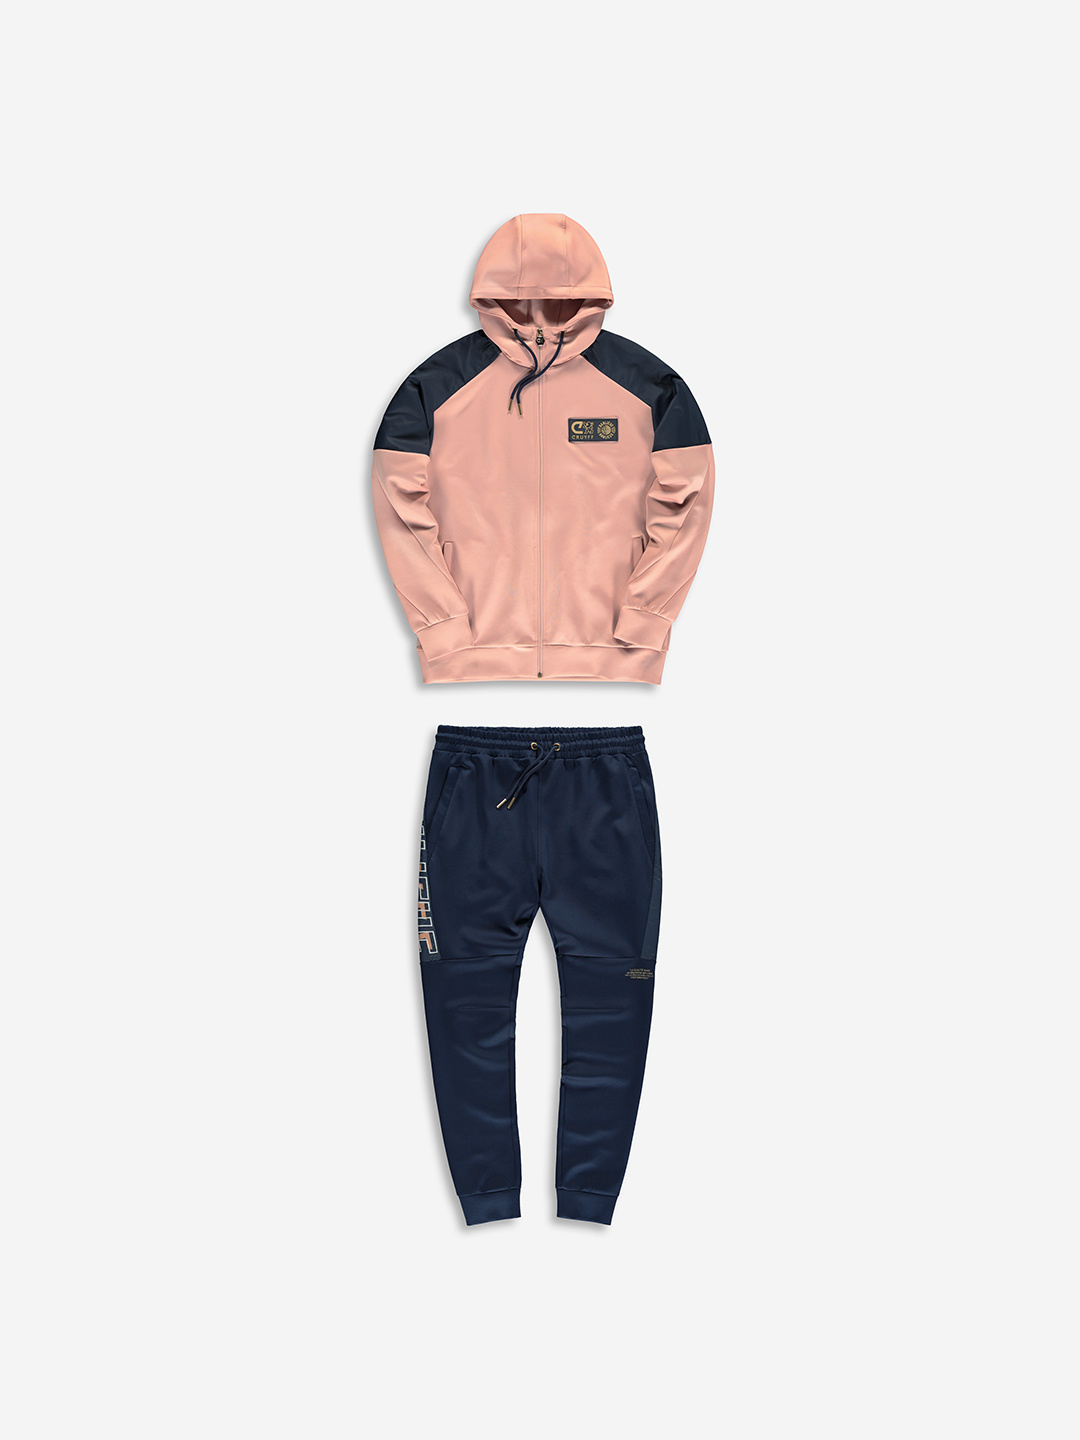 Banlieue x Cruyff tracksuit Navy